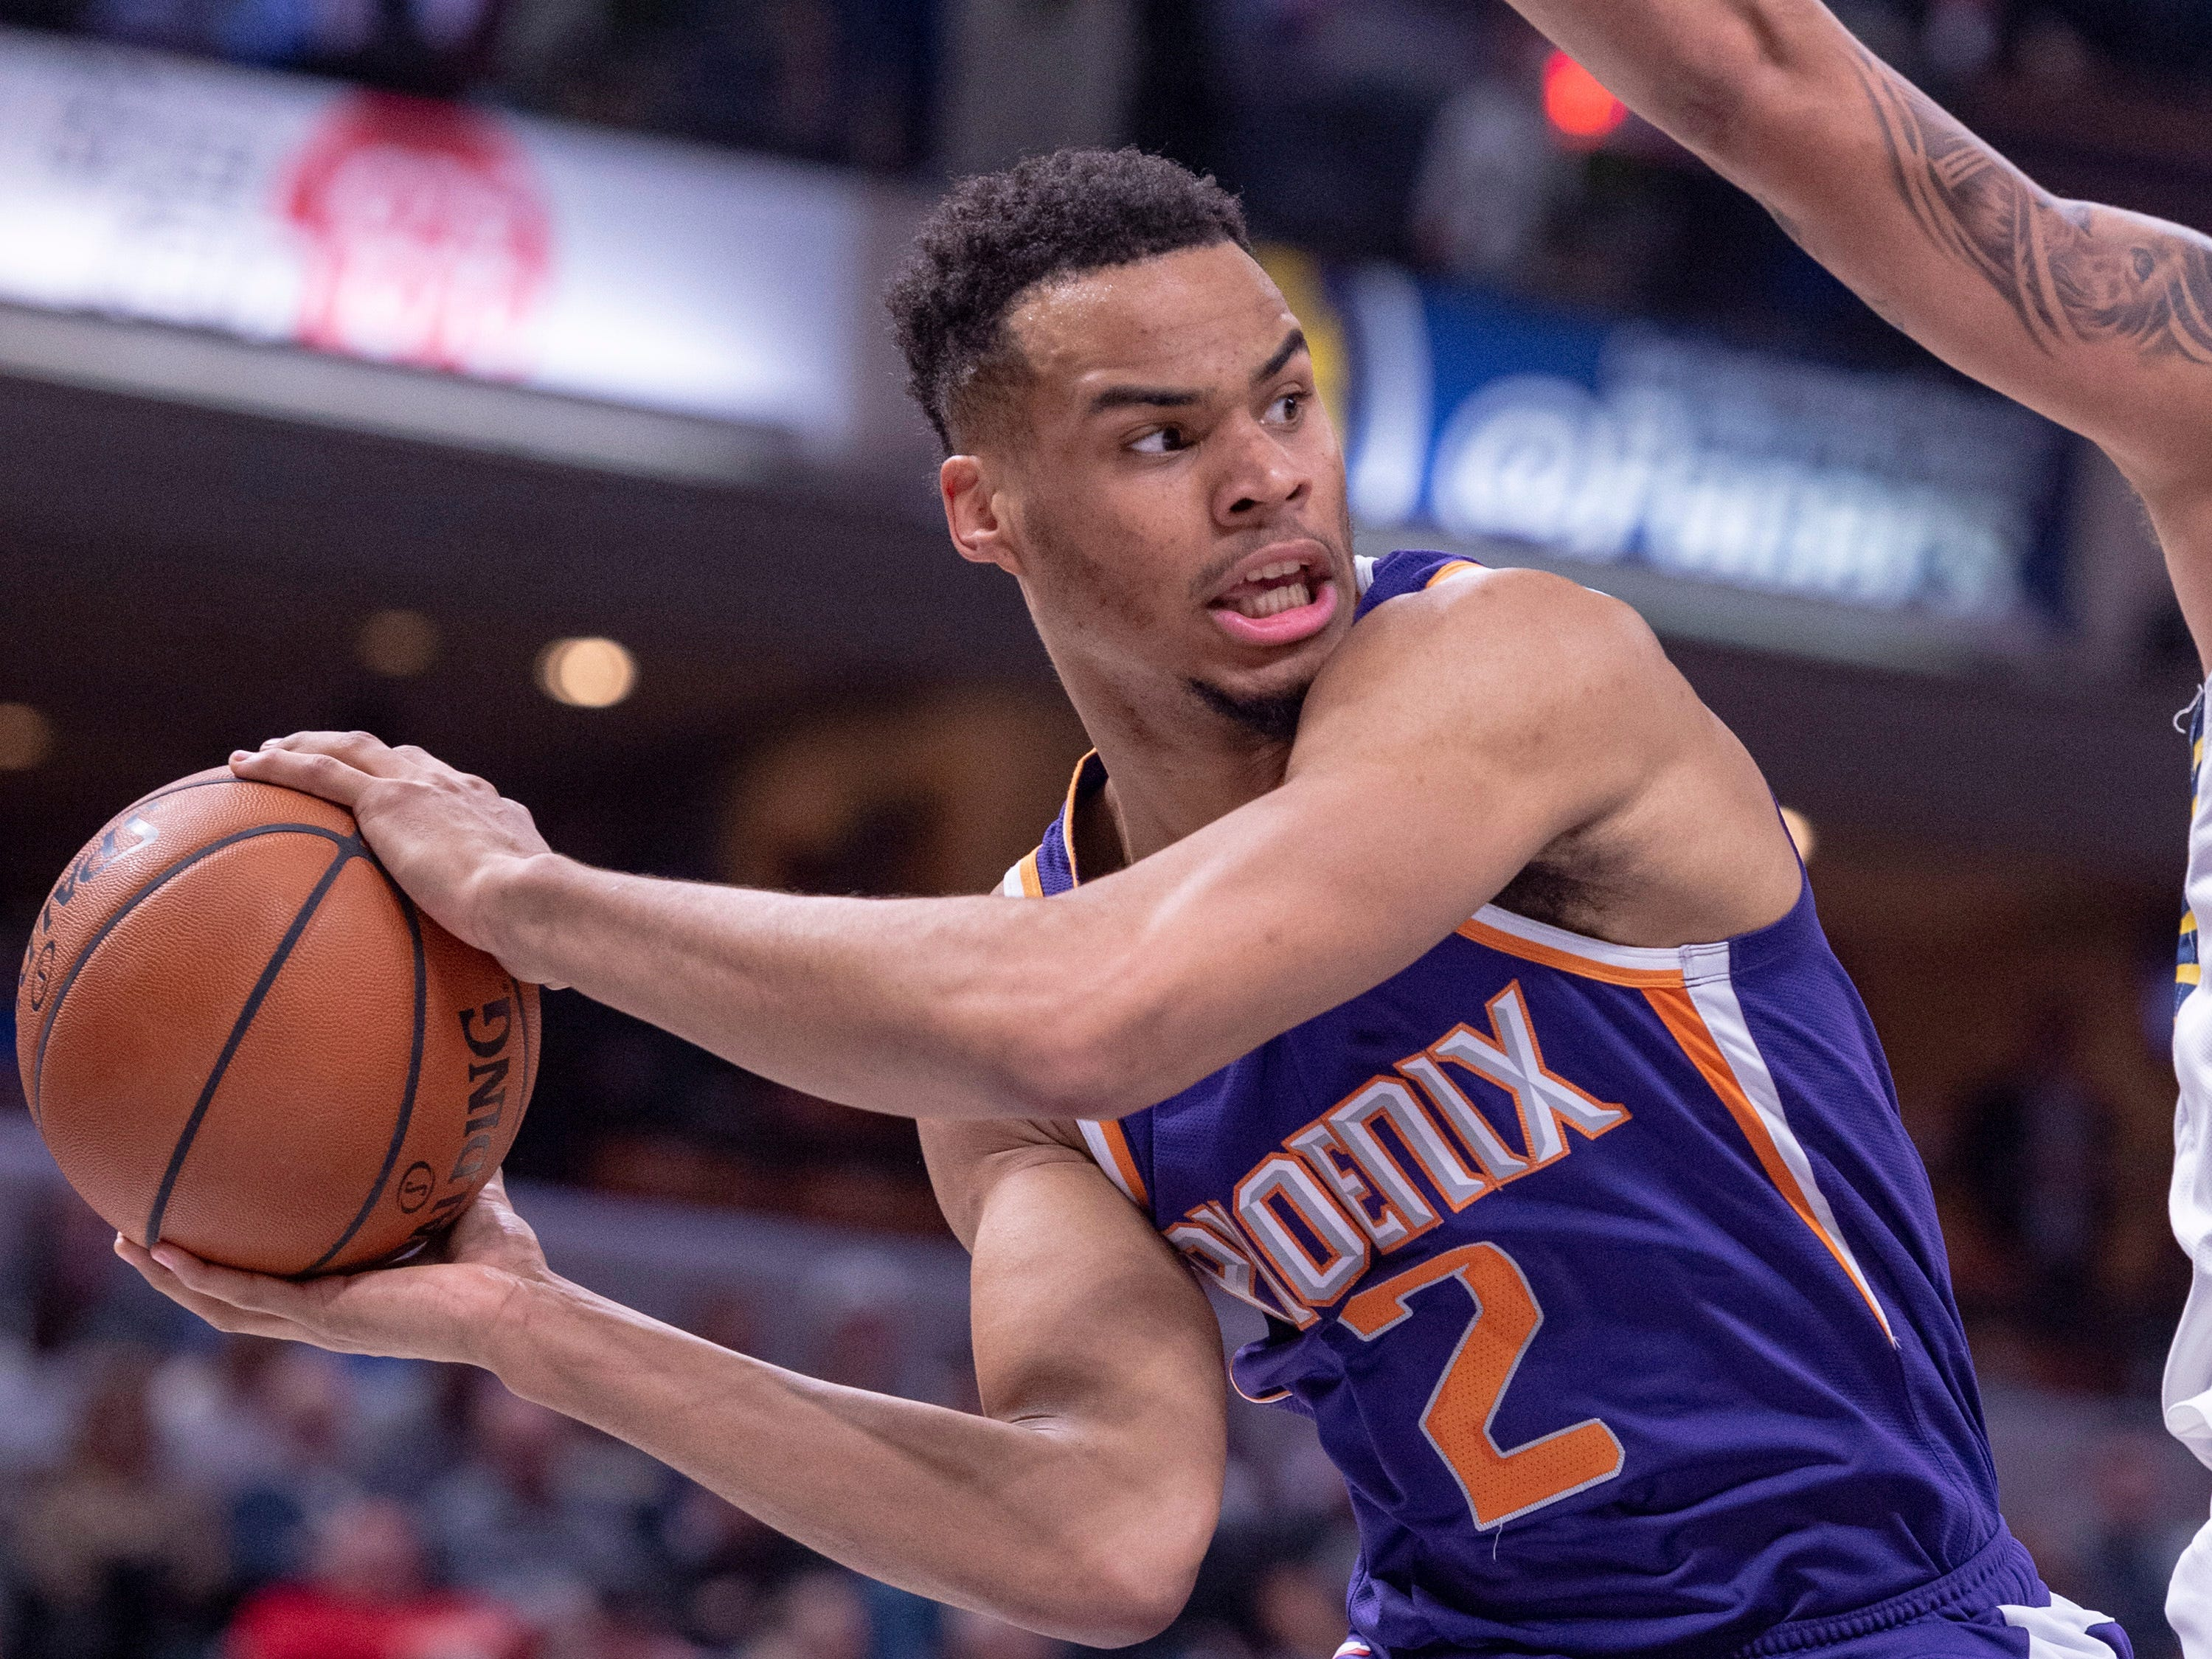 Phoenix Suns guard Elie Okobo (2) prepares to pass the ball to a teammate from the baseline during the first half of the Suns' NBA basketball game against the Indiana Pacers on Tuesday, Jan. 15, 2019, in Indianapolis.